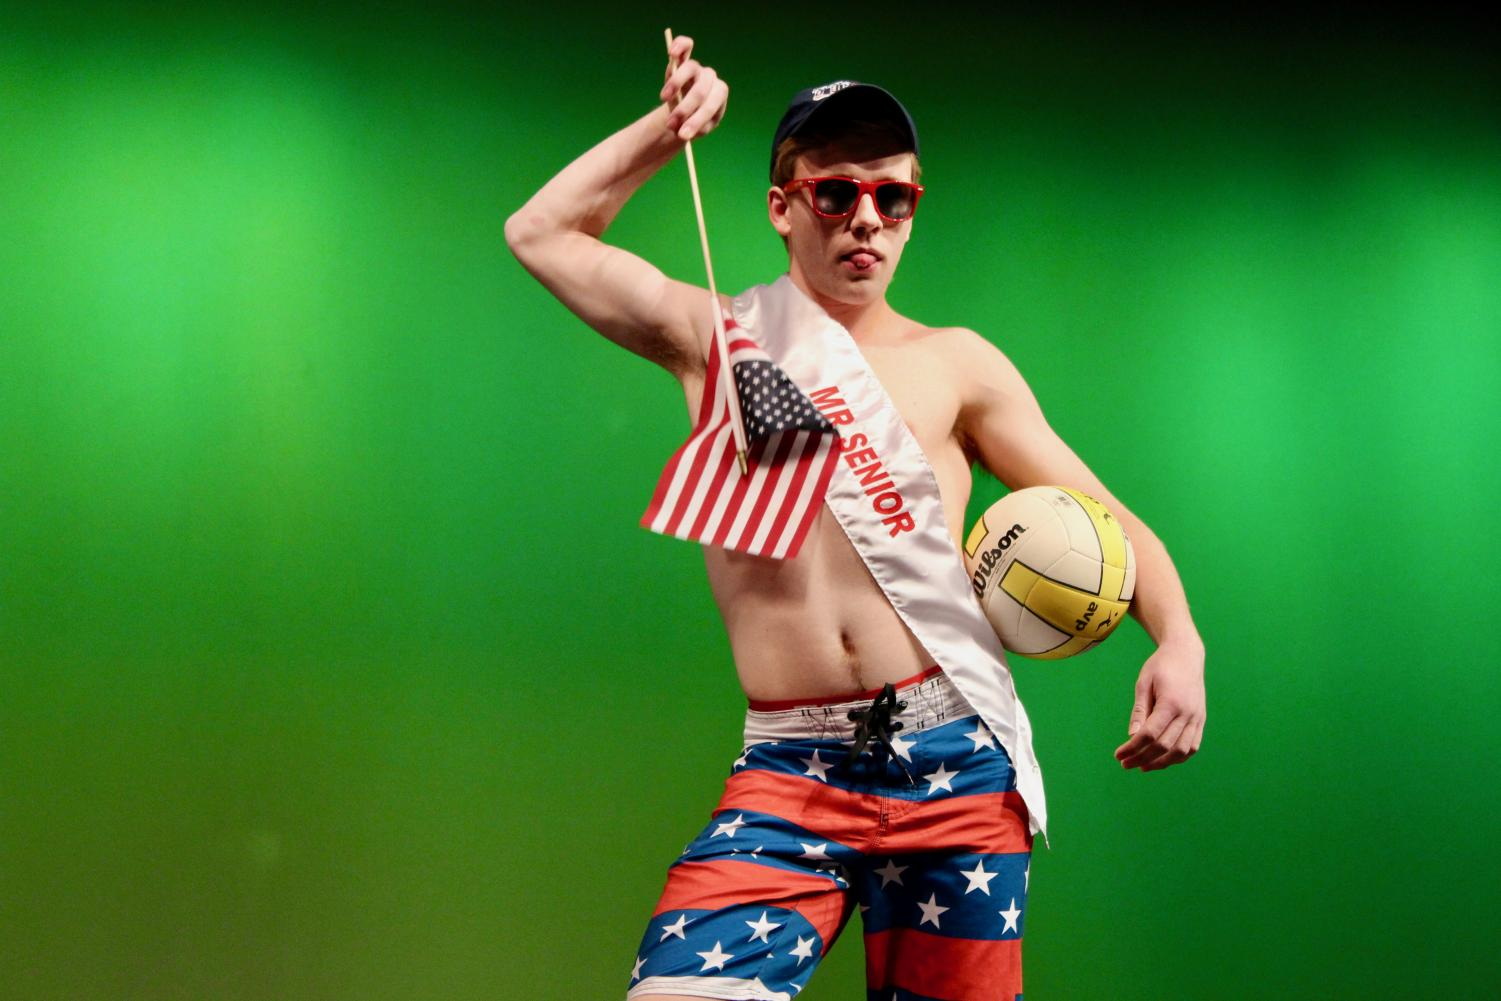 Clayton+Pokorny%2C+senior%2C+poses+with+an+American+flag+during+the+swimsuit+segment+of+the+contest.